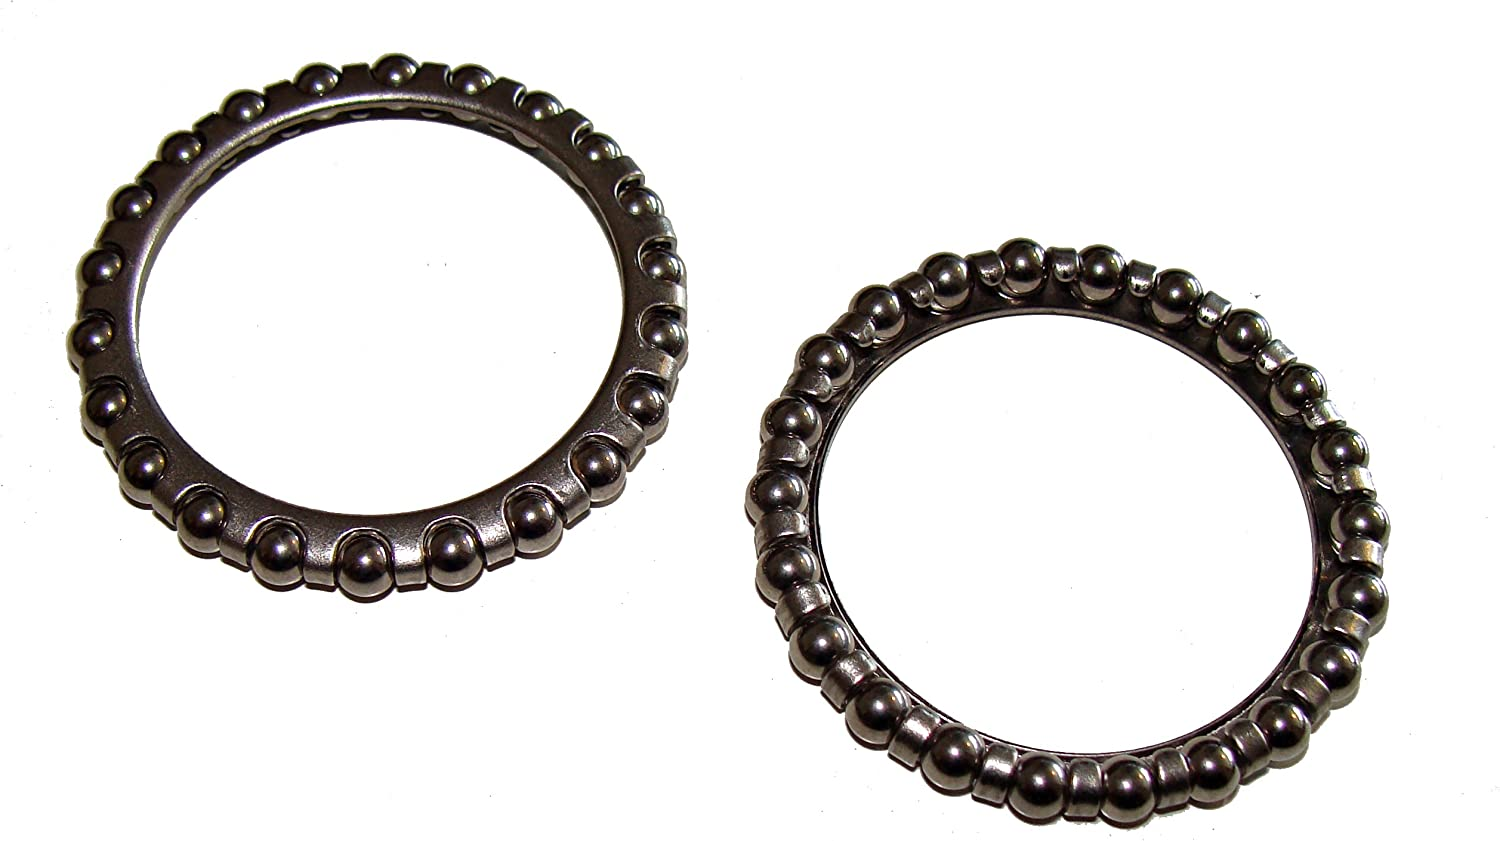 The Little Bike Shop 2 x Weldtite Headset Bearing Cage 532 Oversize (A Head), Caged Precision Bearings